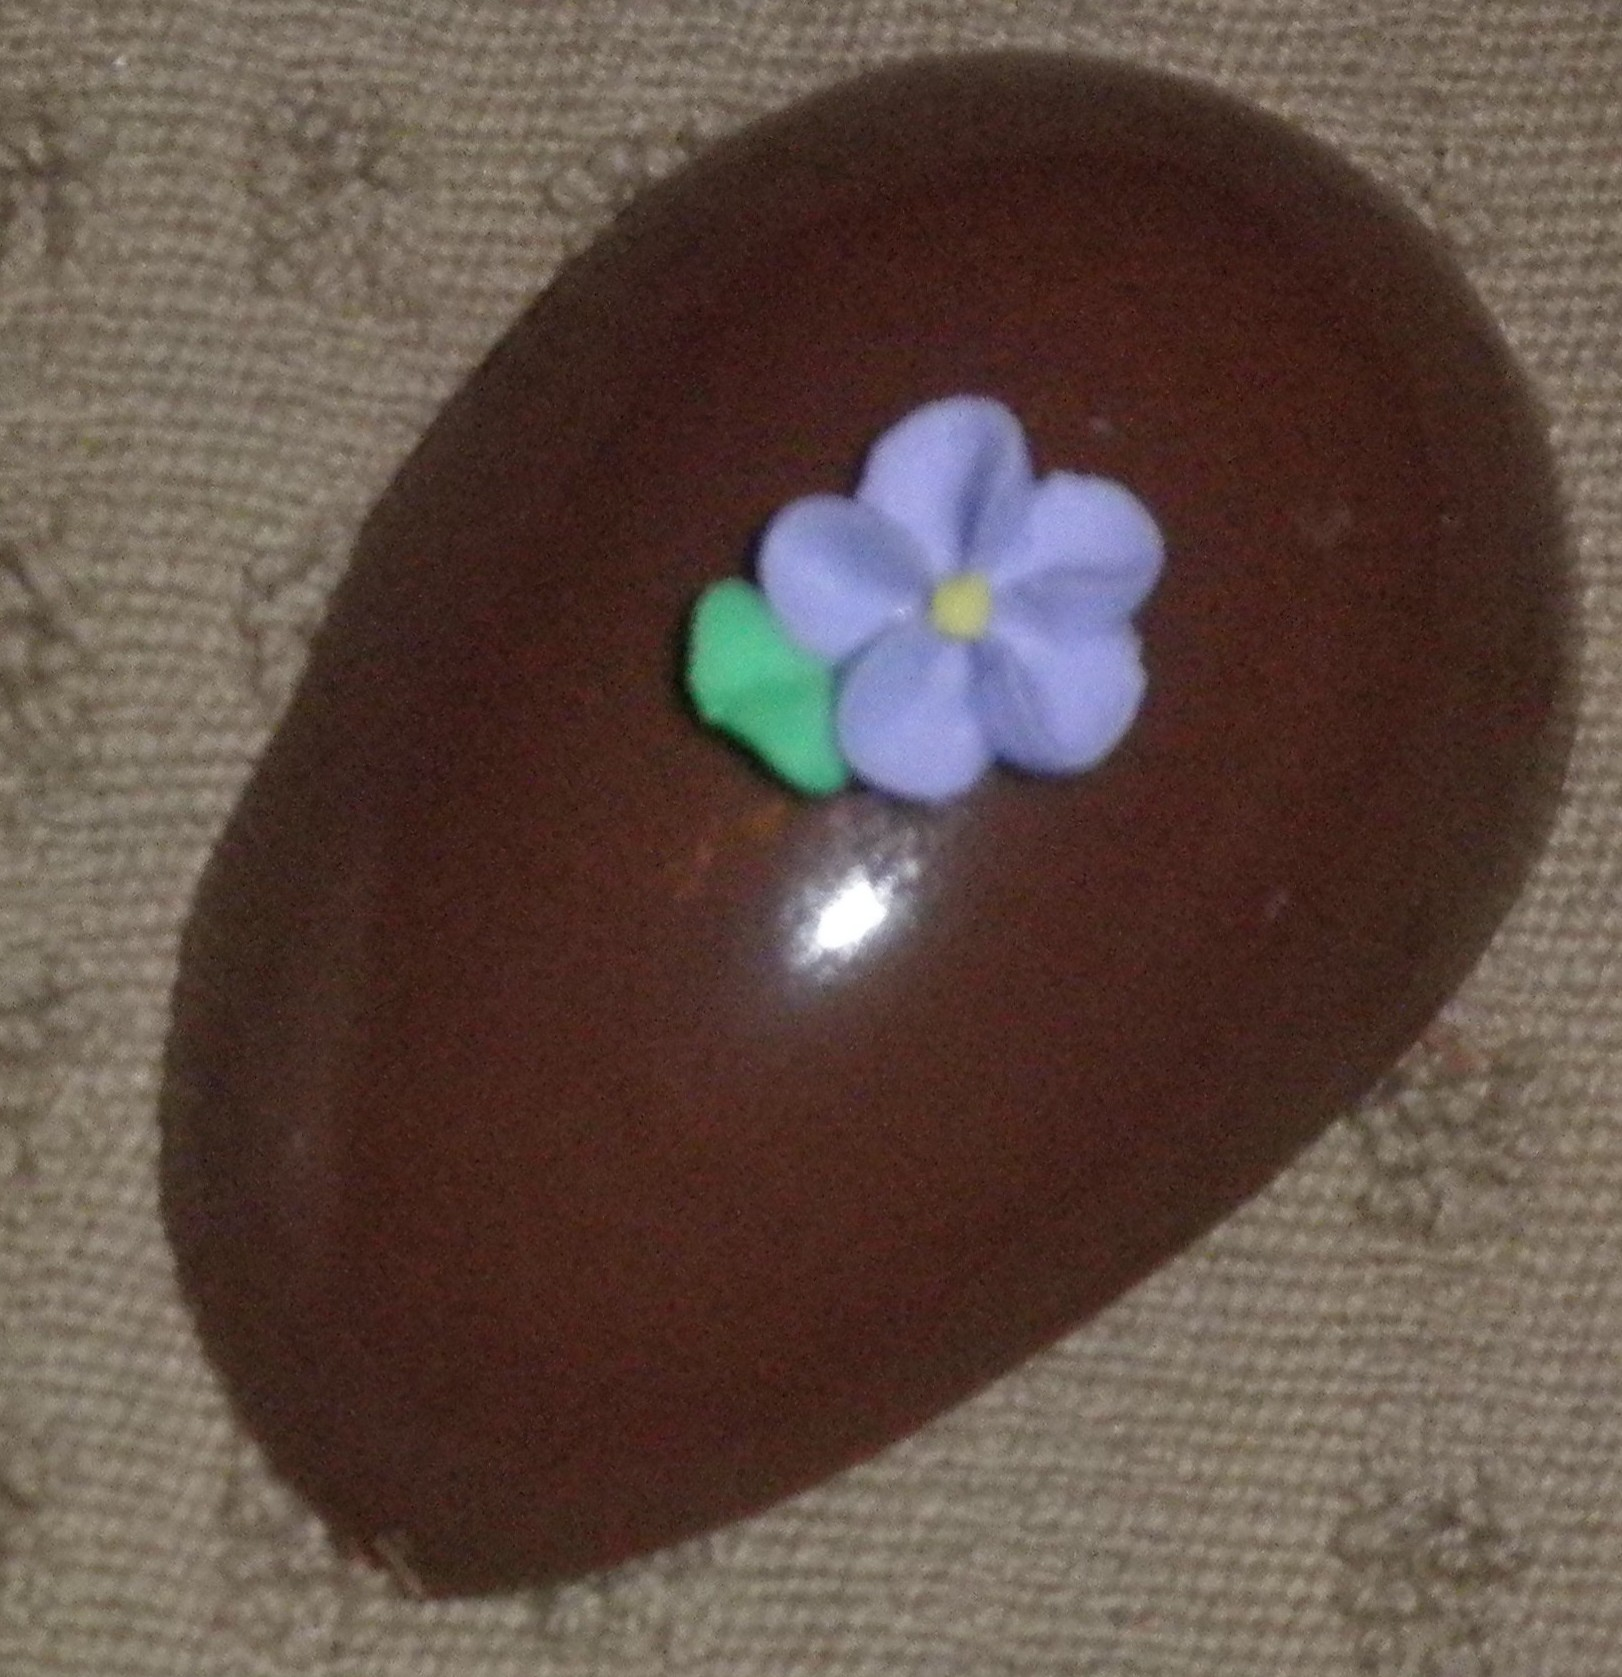 Easter candy 2 1/2 in egg